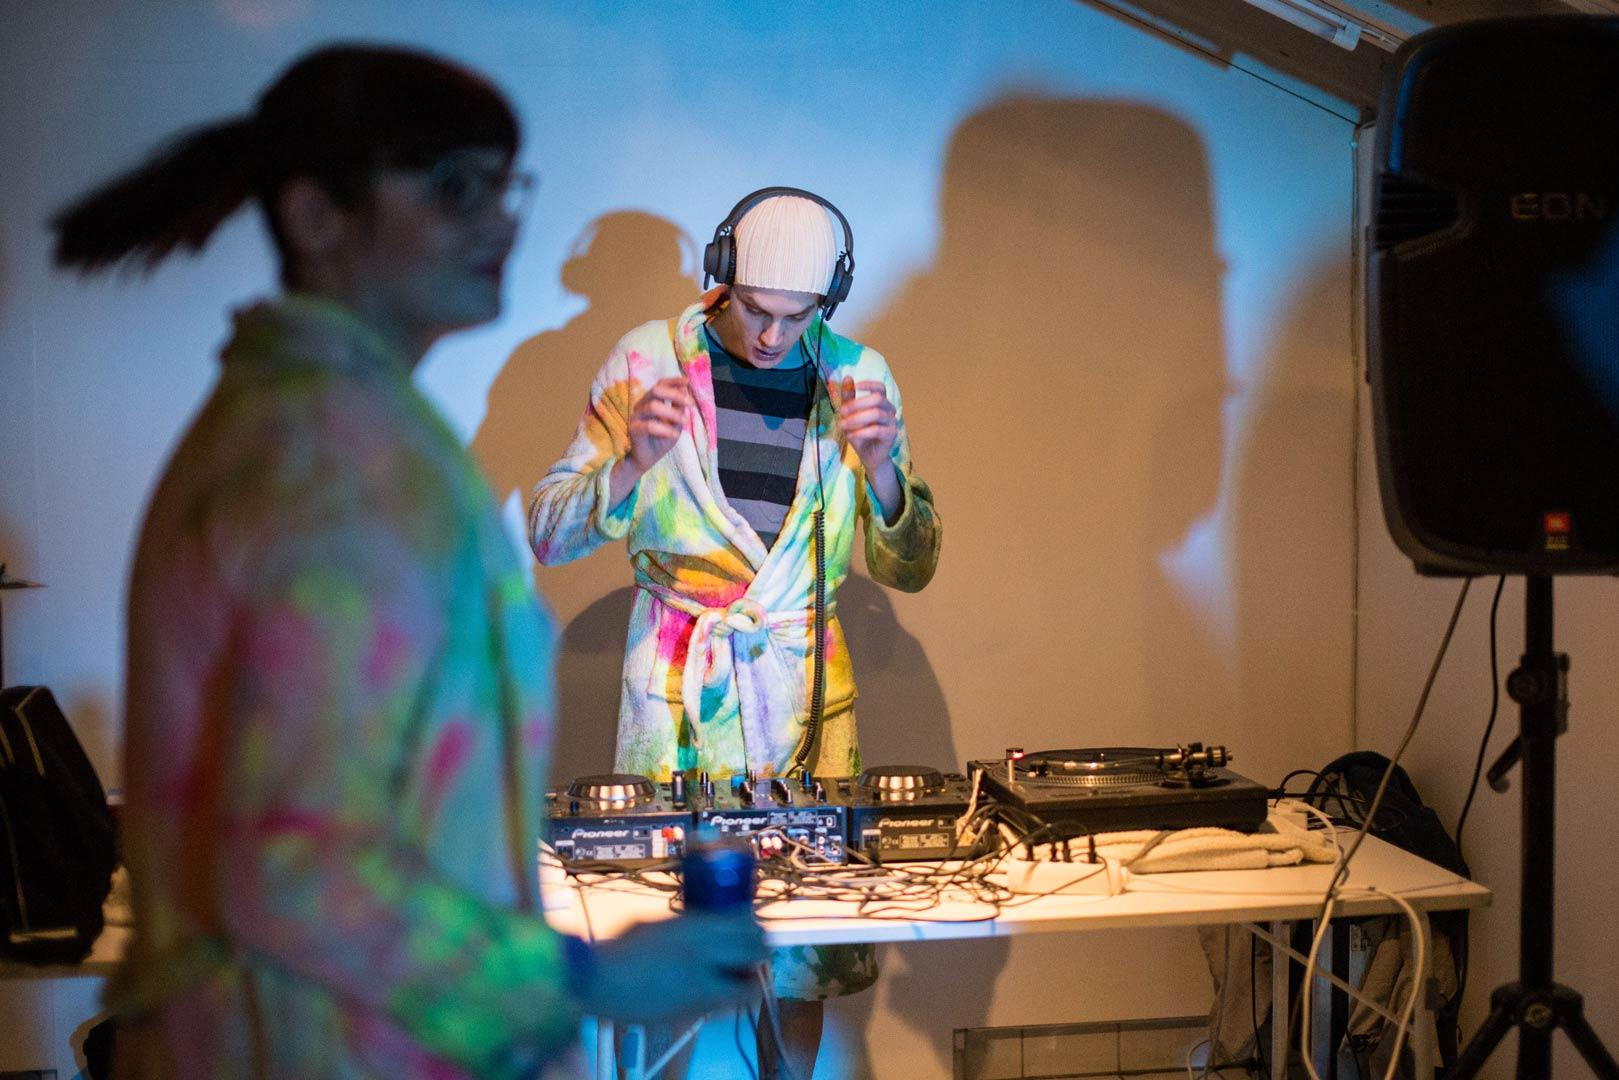 Limited edition of sauna sessions with paintings as towels and robes/ robes and towels as paintings in SmallProjects Tromso gallery. 2014/ / DJ Christian Bruun/  Photo by Kasia Mikolajewska